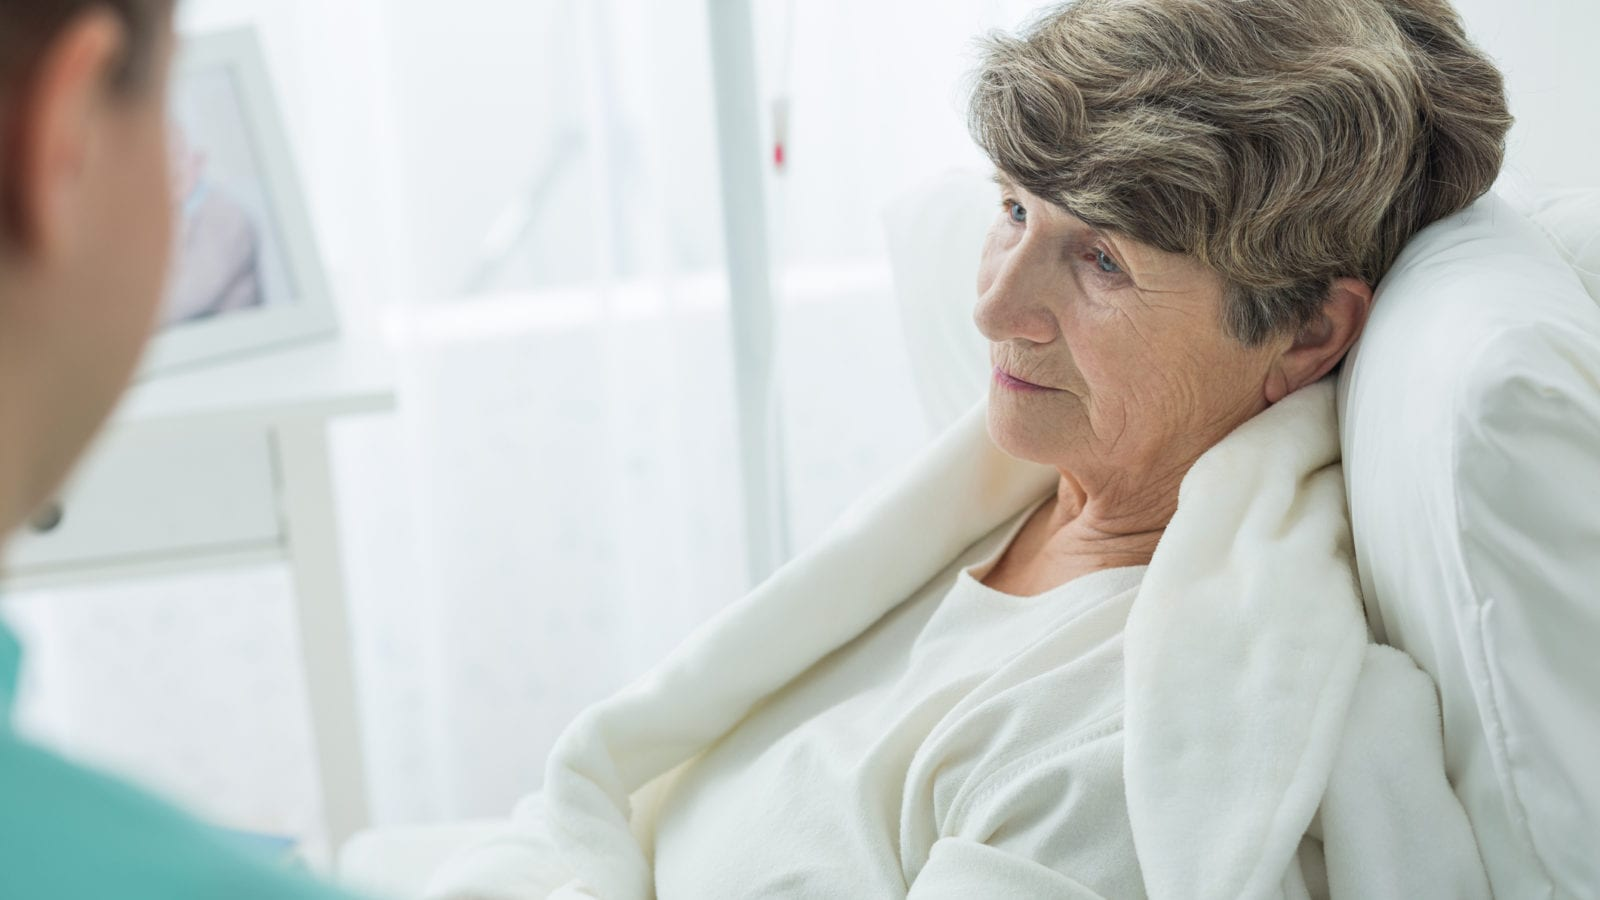 Photo of nurse and sad old woman at hospital